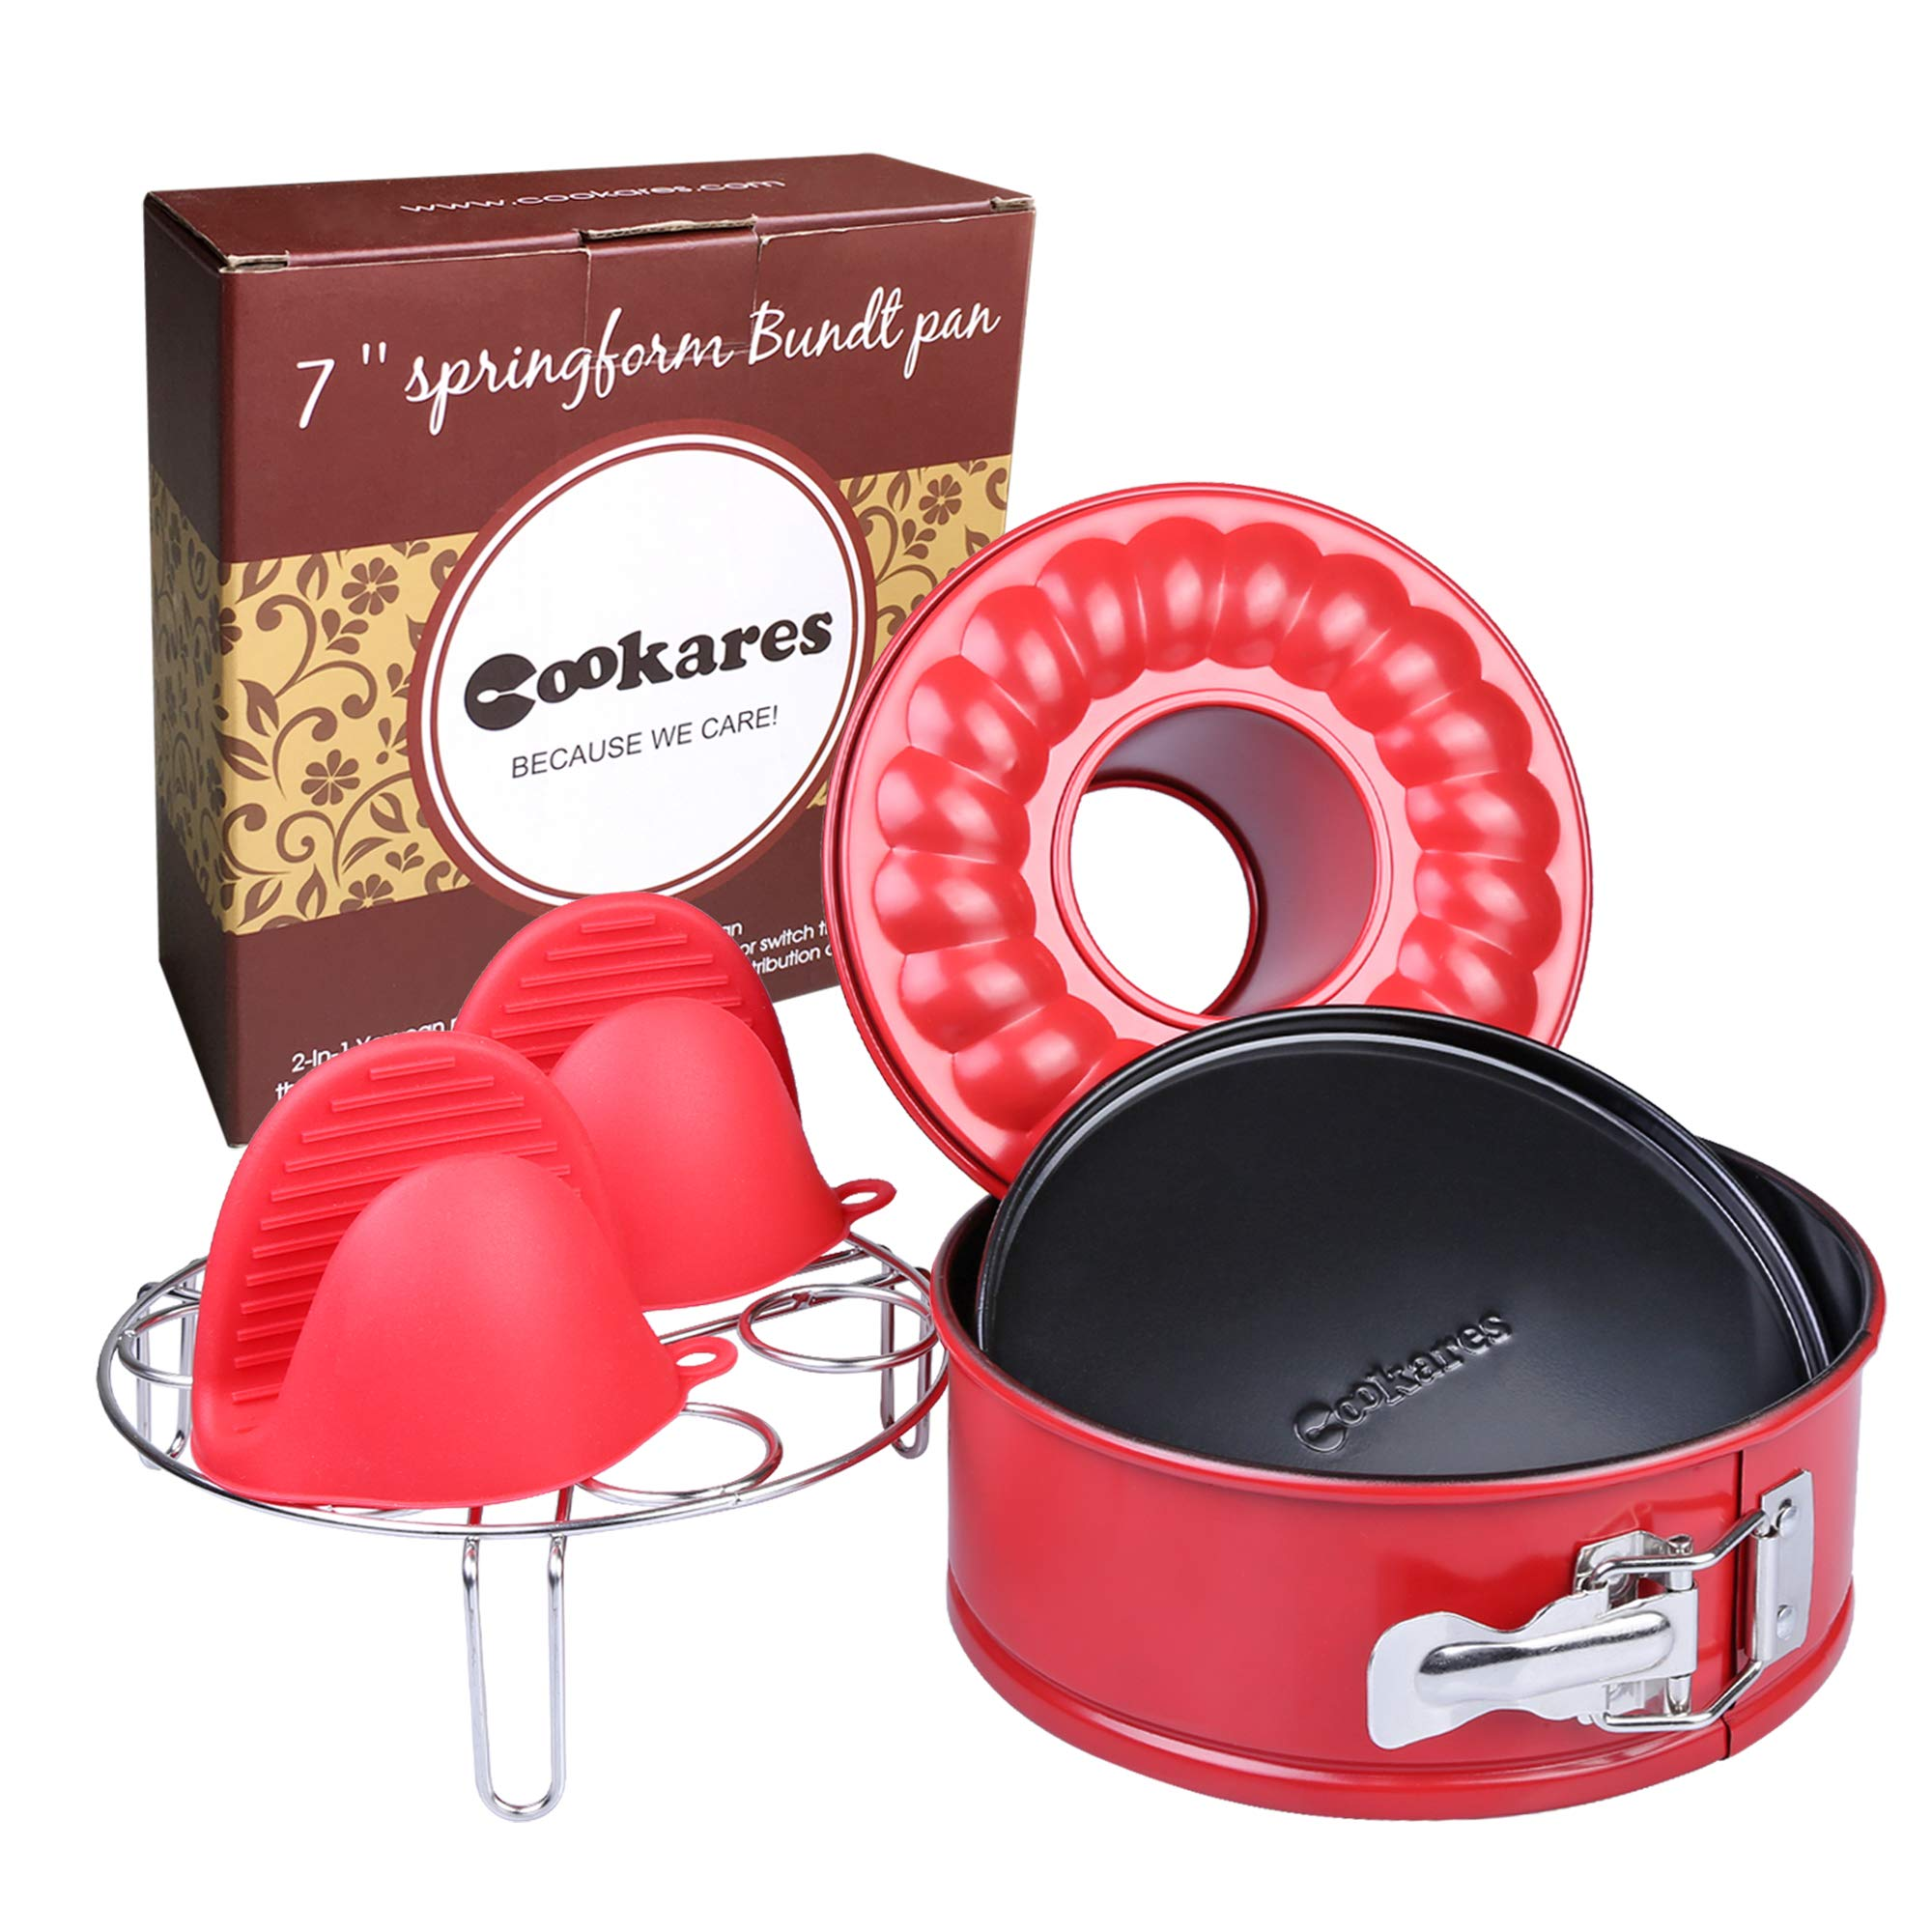 Nonstick 2-in-1 springform 7-inch cheesecake quick-release pan set: two interchangeable bottoms egg rack for Instant Pot accessories & 2 mini Silicone Mitts - fits 5 6 8 Qt by CooKares by CooKares